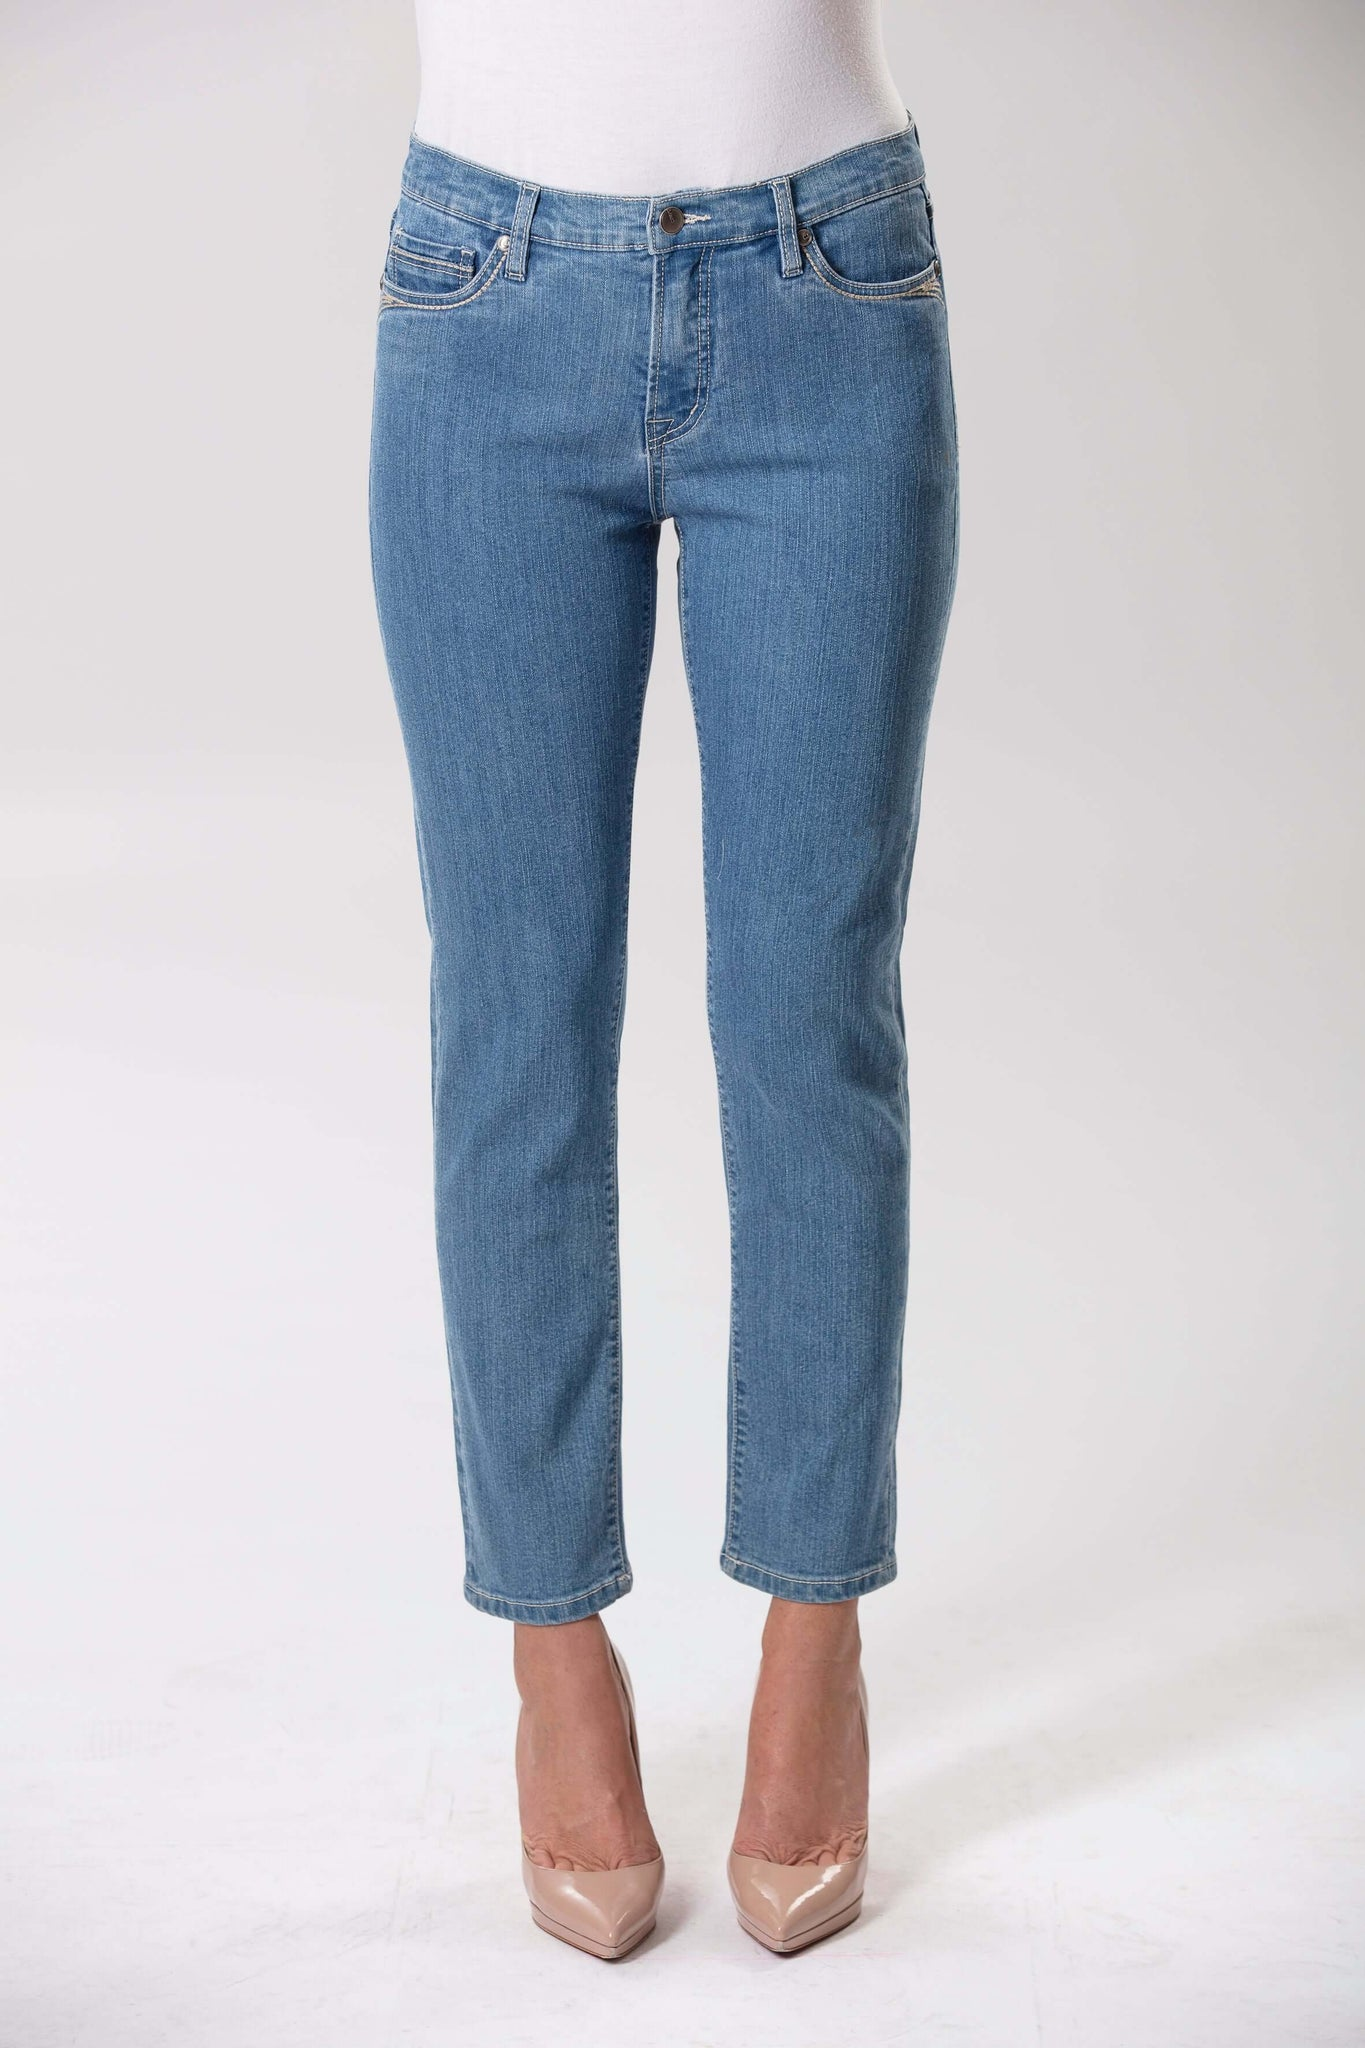 W04B2074 - Audrey Stretch Denim - Lagoon Wash